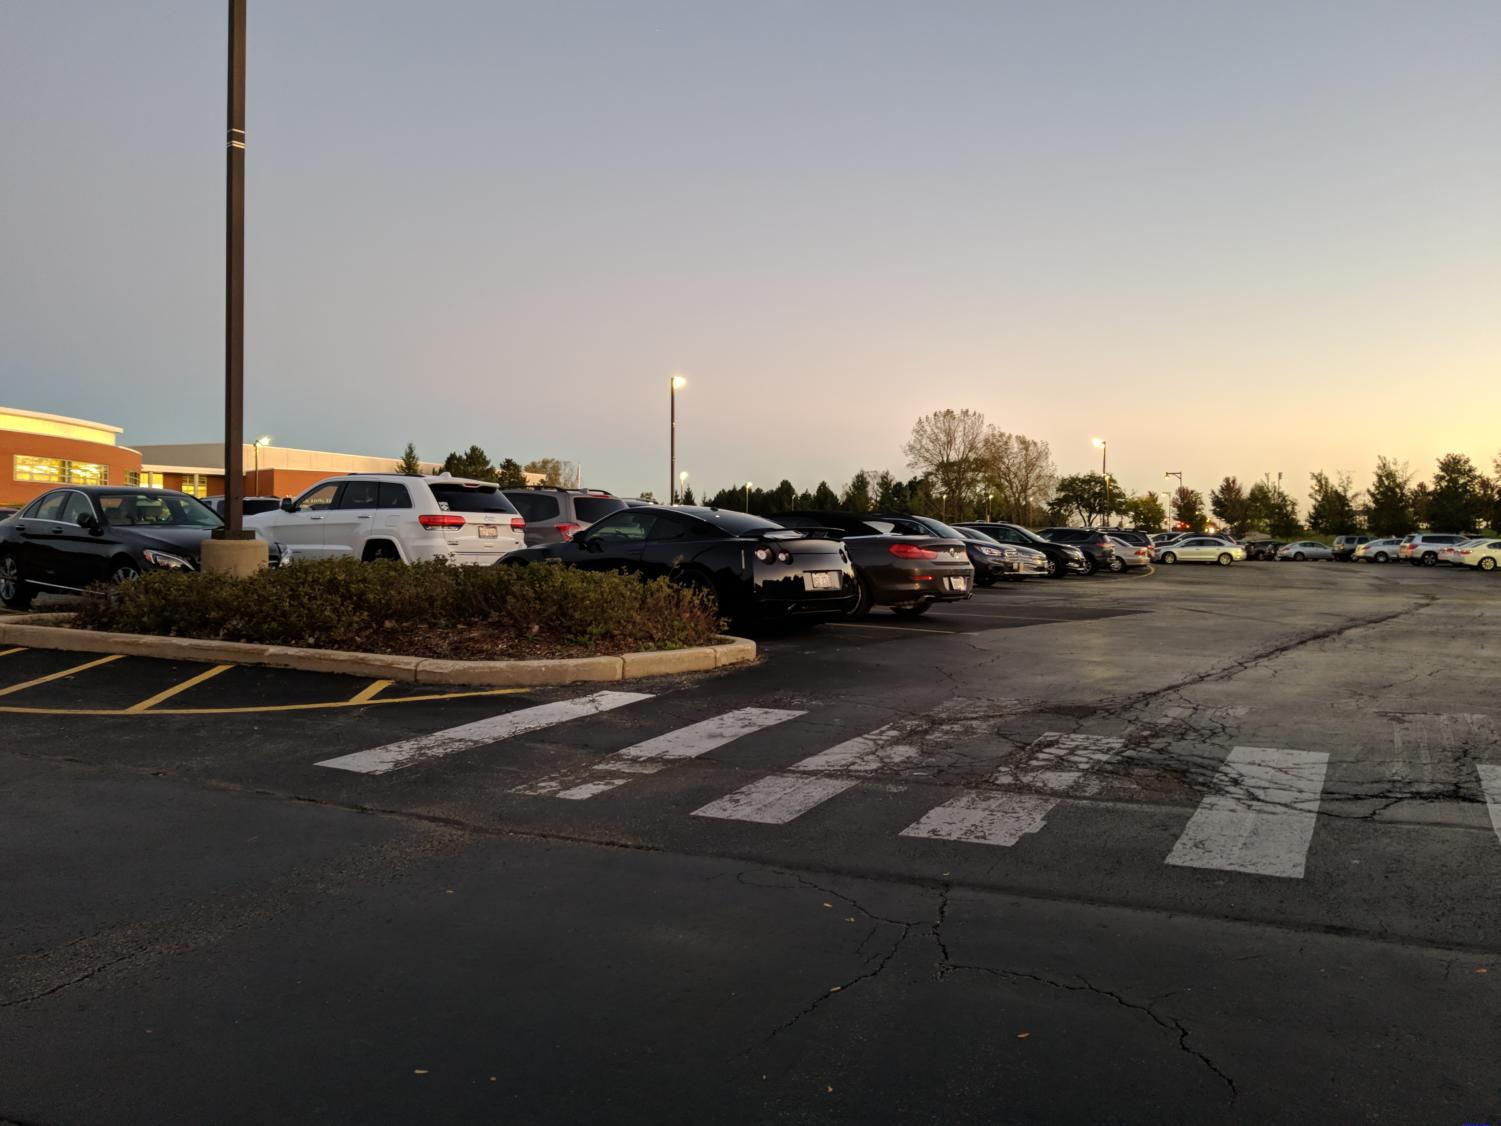 Close spaces and student driving habits cause frustration in VHHS parking lots.